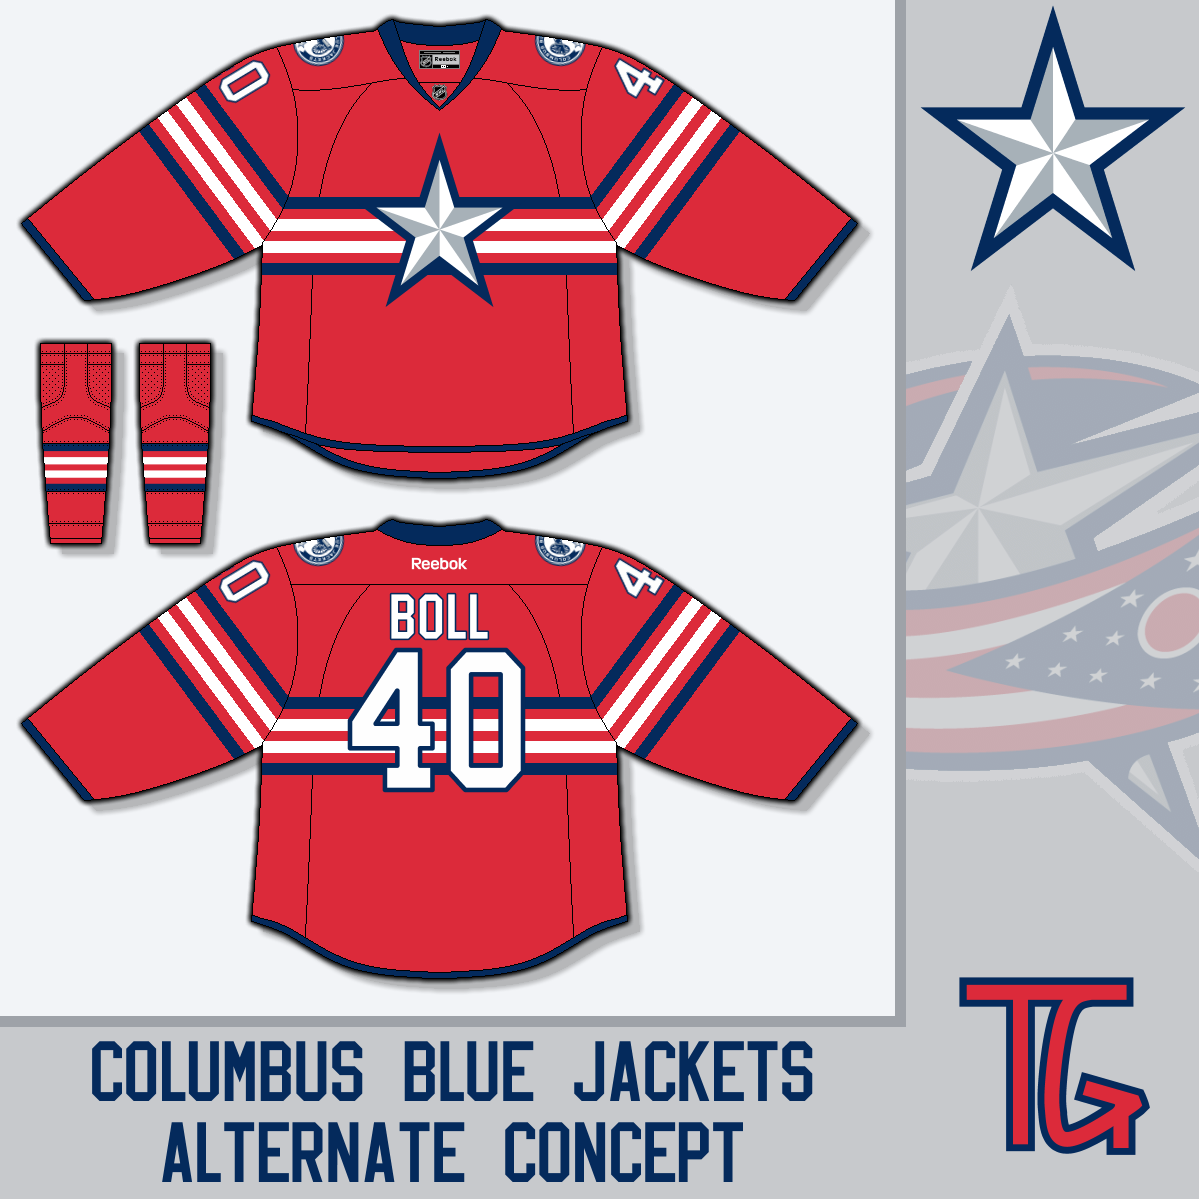 4ffaa11ec06 TG wants the Jackets in a red jersey with a huge star. I was going to say  that the only team who should have a primary star logo is Dallas but then  ...